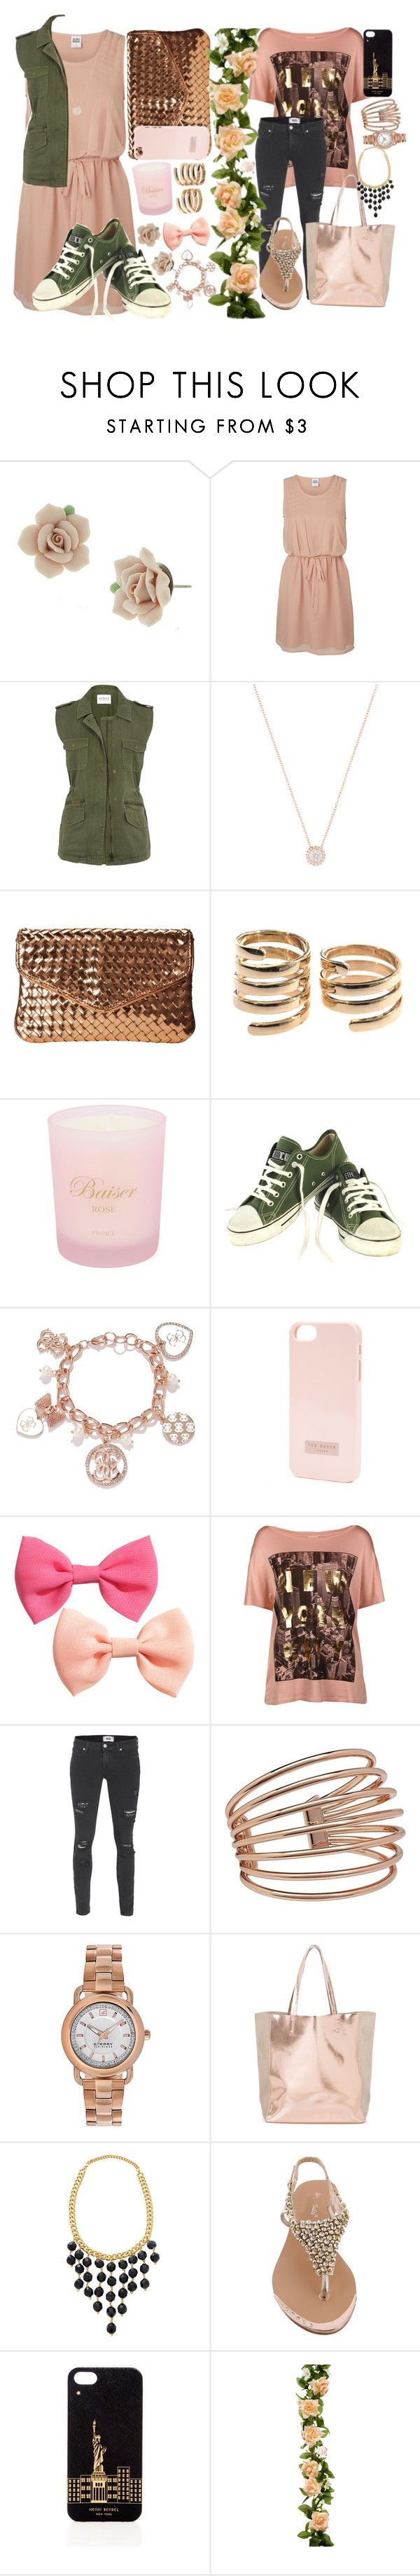 """Rose gold is the best gold"" by nkb11-11 ❤ liked on Polyvore featuring 1928, Vero Moda, Gemma Crus, Deux Lux, Aamaya by priyanka, Ethletic, GUESS, Ted Baker, H&M and Paige Denim"